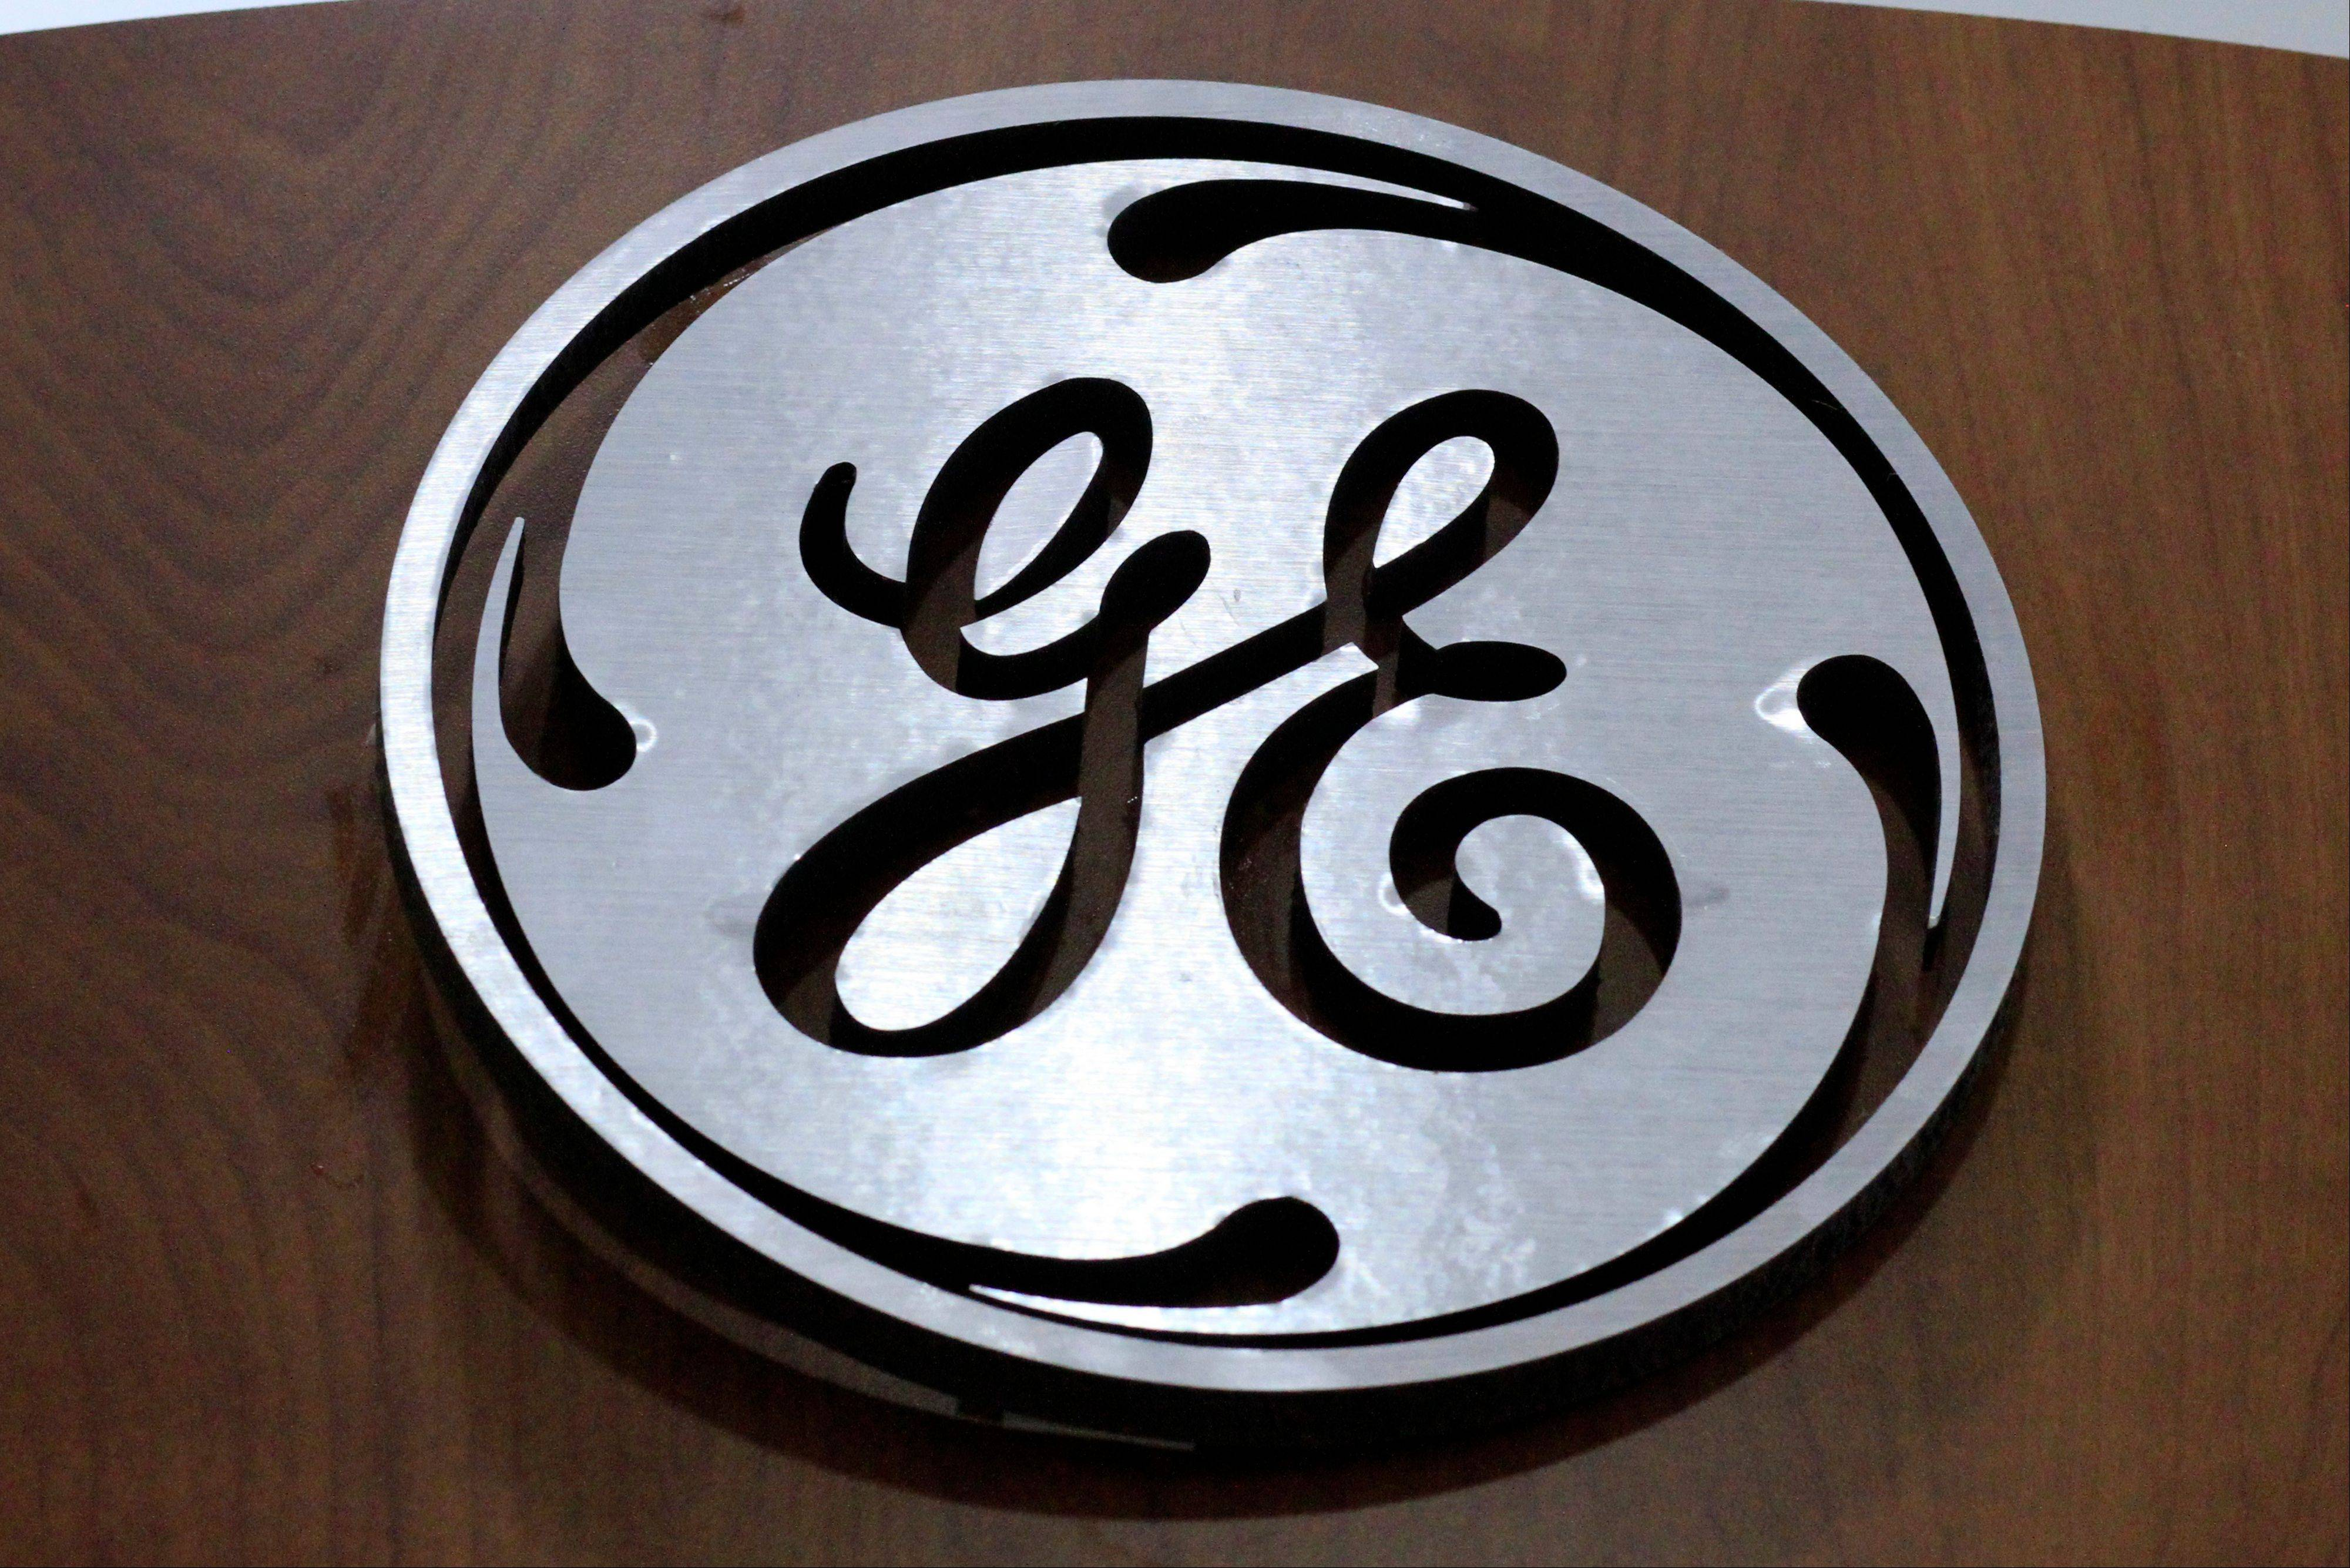 A General Electric logo is displayed on a kitchen appliances Thuirsday in an H.H. Gregg store in Cranberry Township, Pa. General Electric Co. reported quarterly financial results Friday and its stock slumped 62 cents, or 2.3 percent, to $26.58 after profit margins in the company�s industrial unit fell short of its own targets.